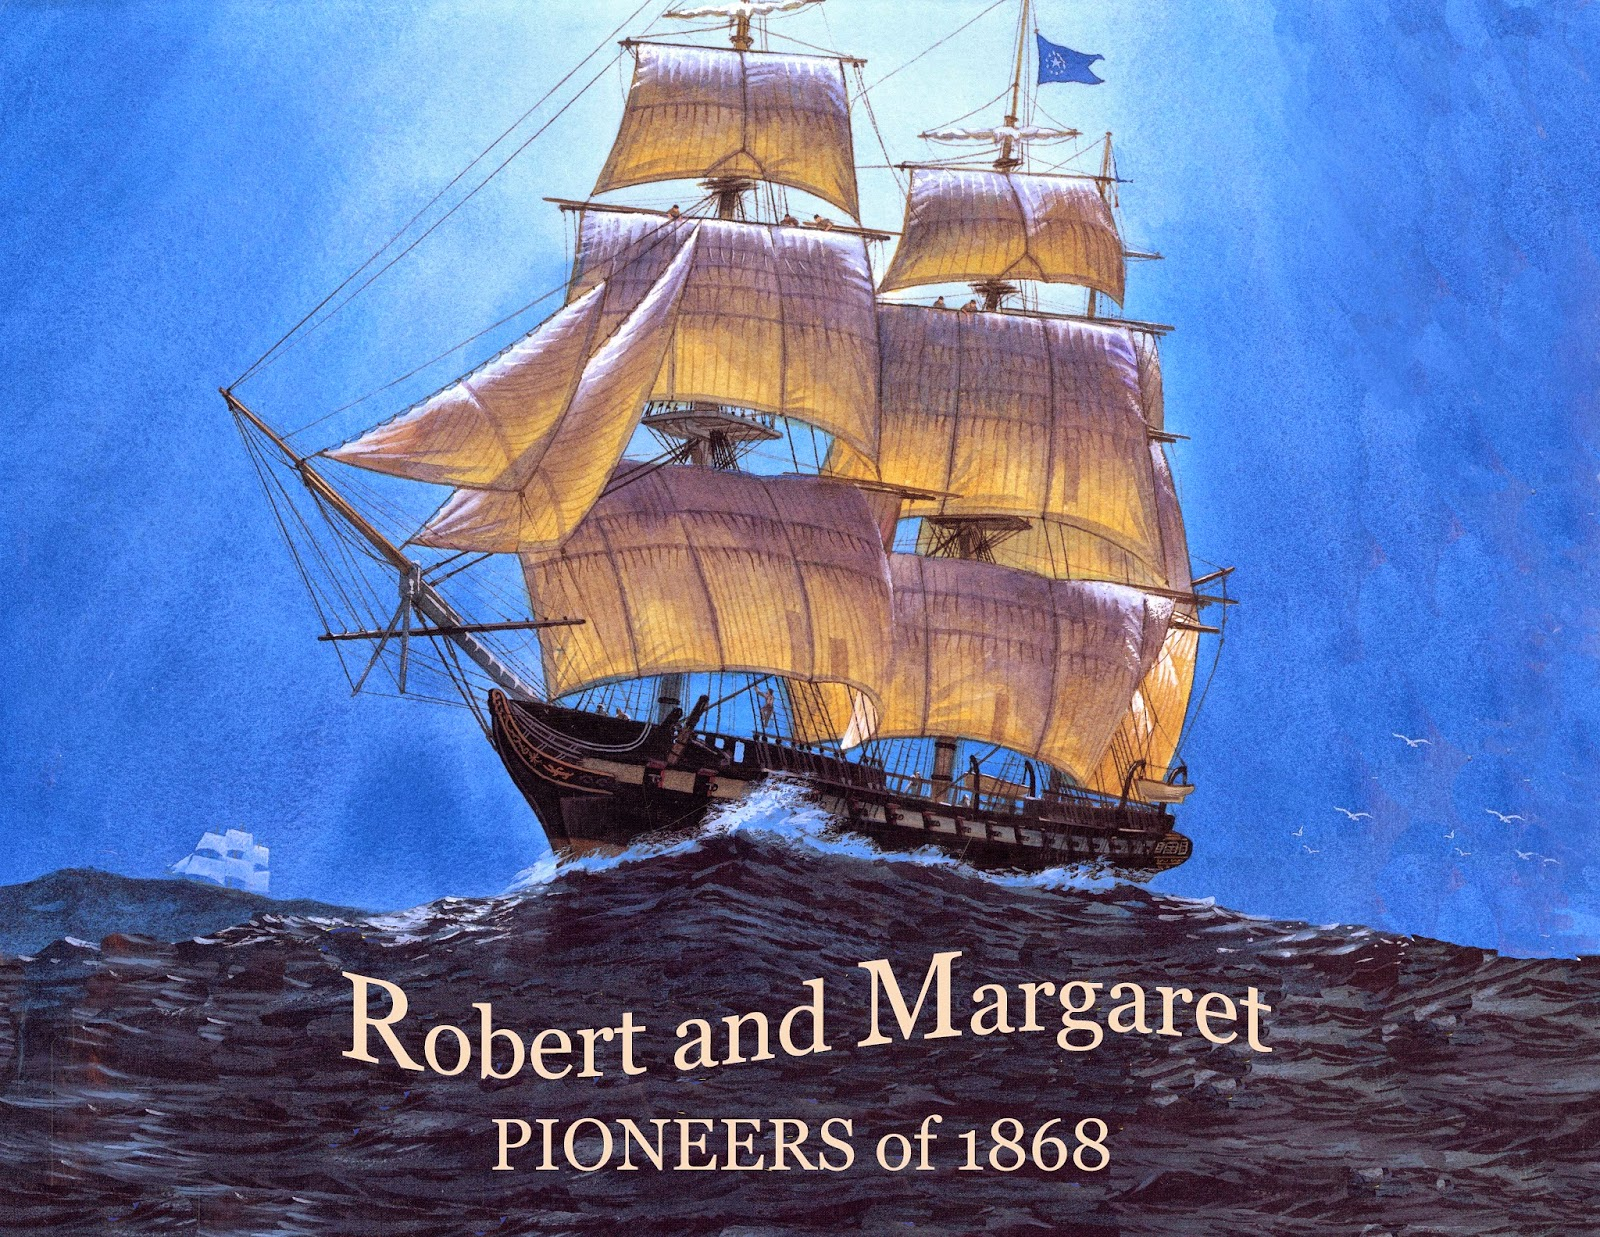 http://gatheringgardiners.blogspot.com/2014/10/published-books-by-kent-gardiner.html